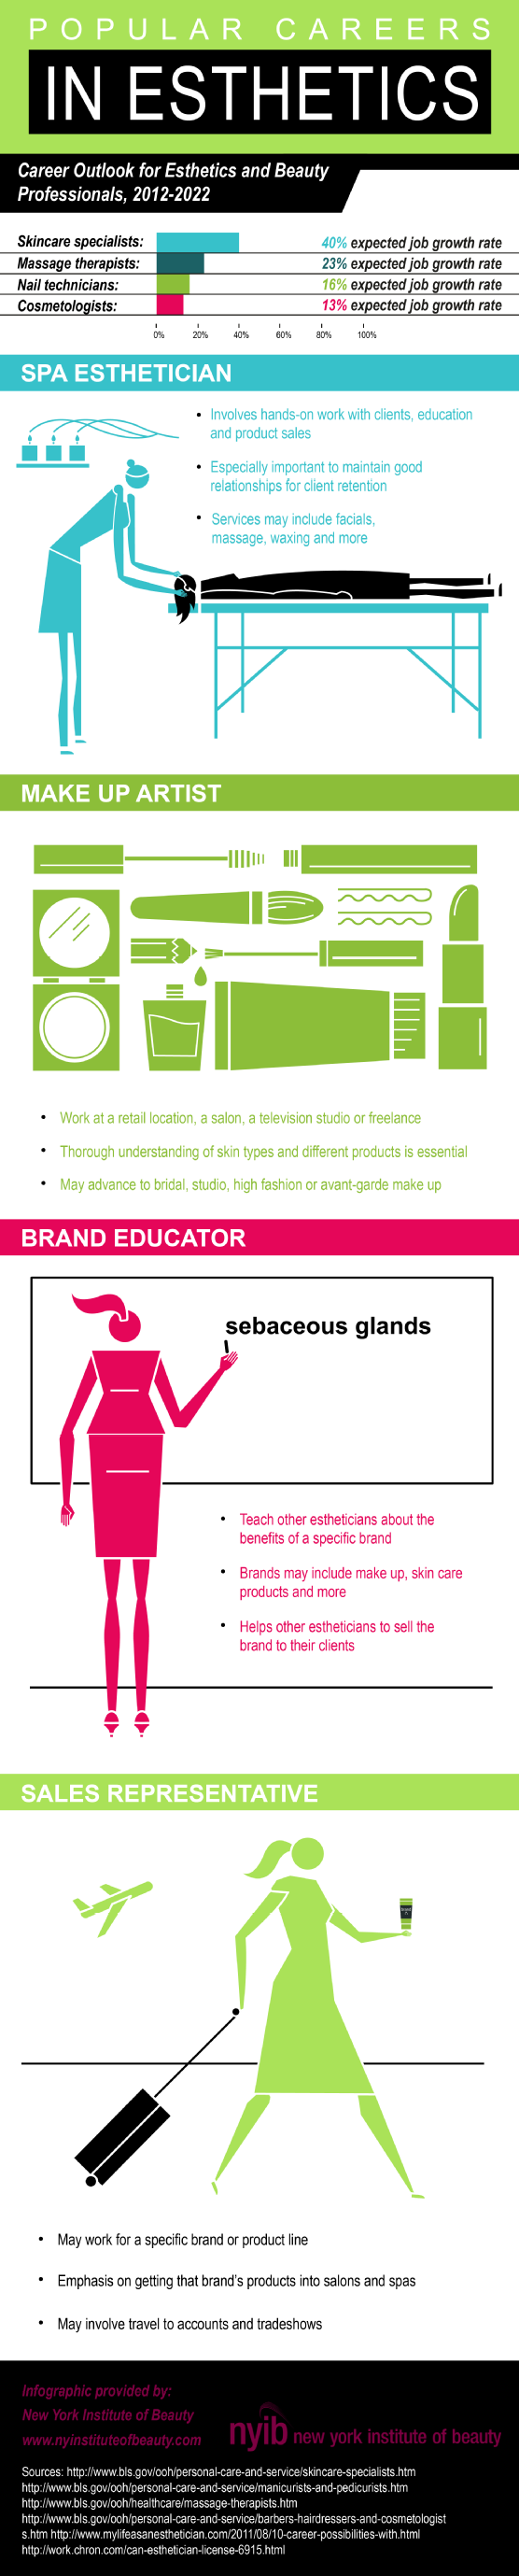 Popular Careers in Esthetics #infographic